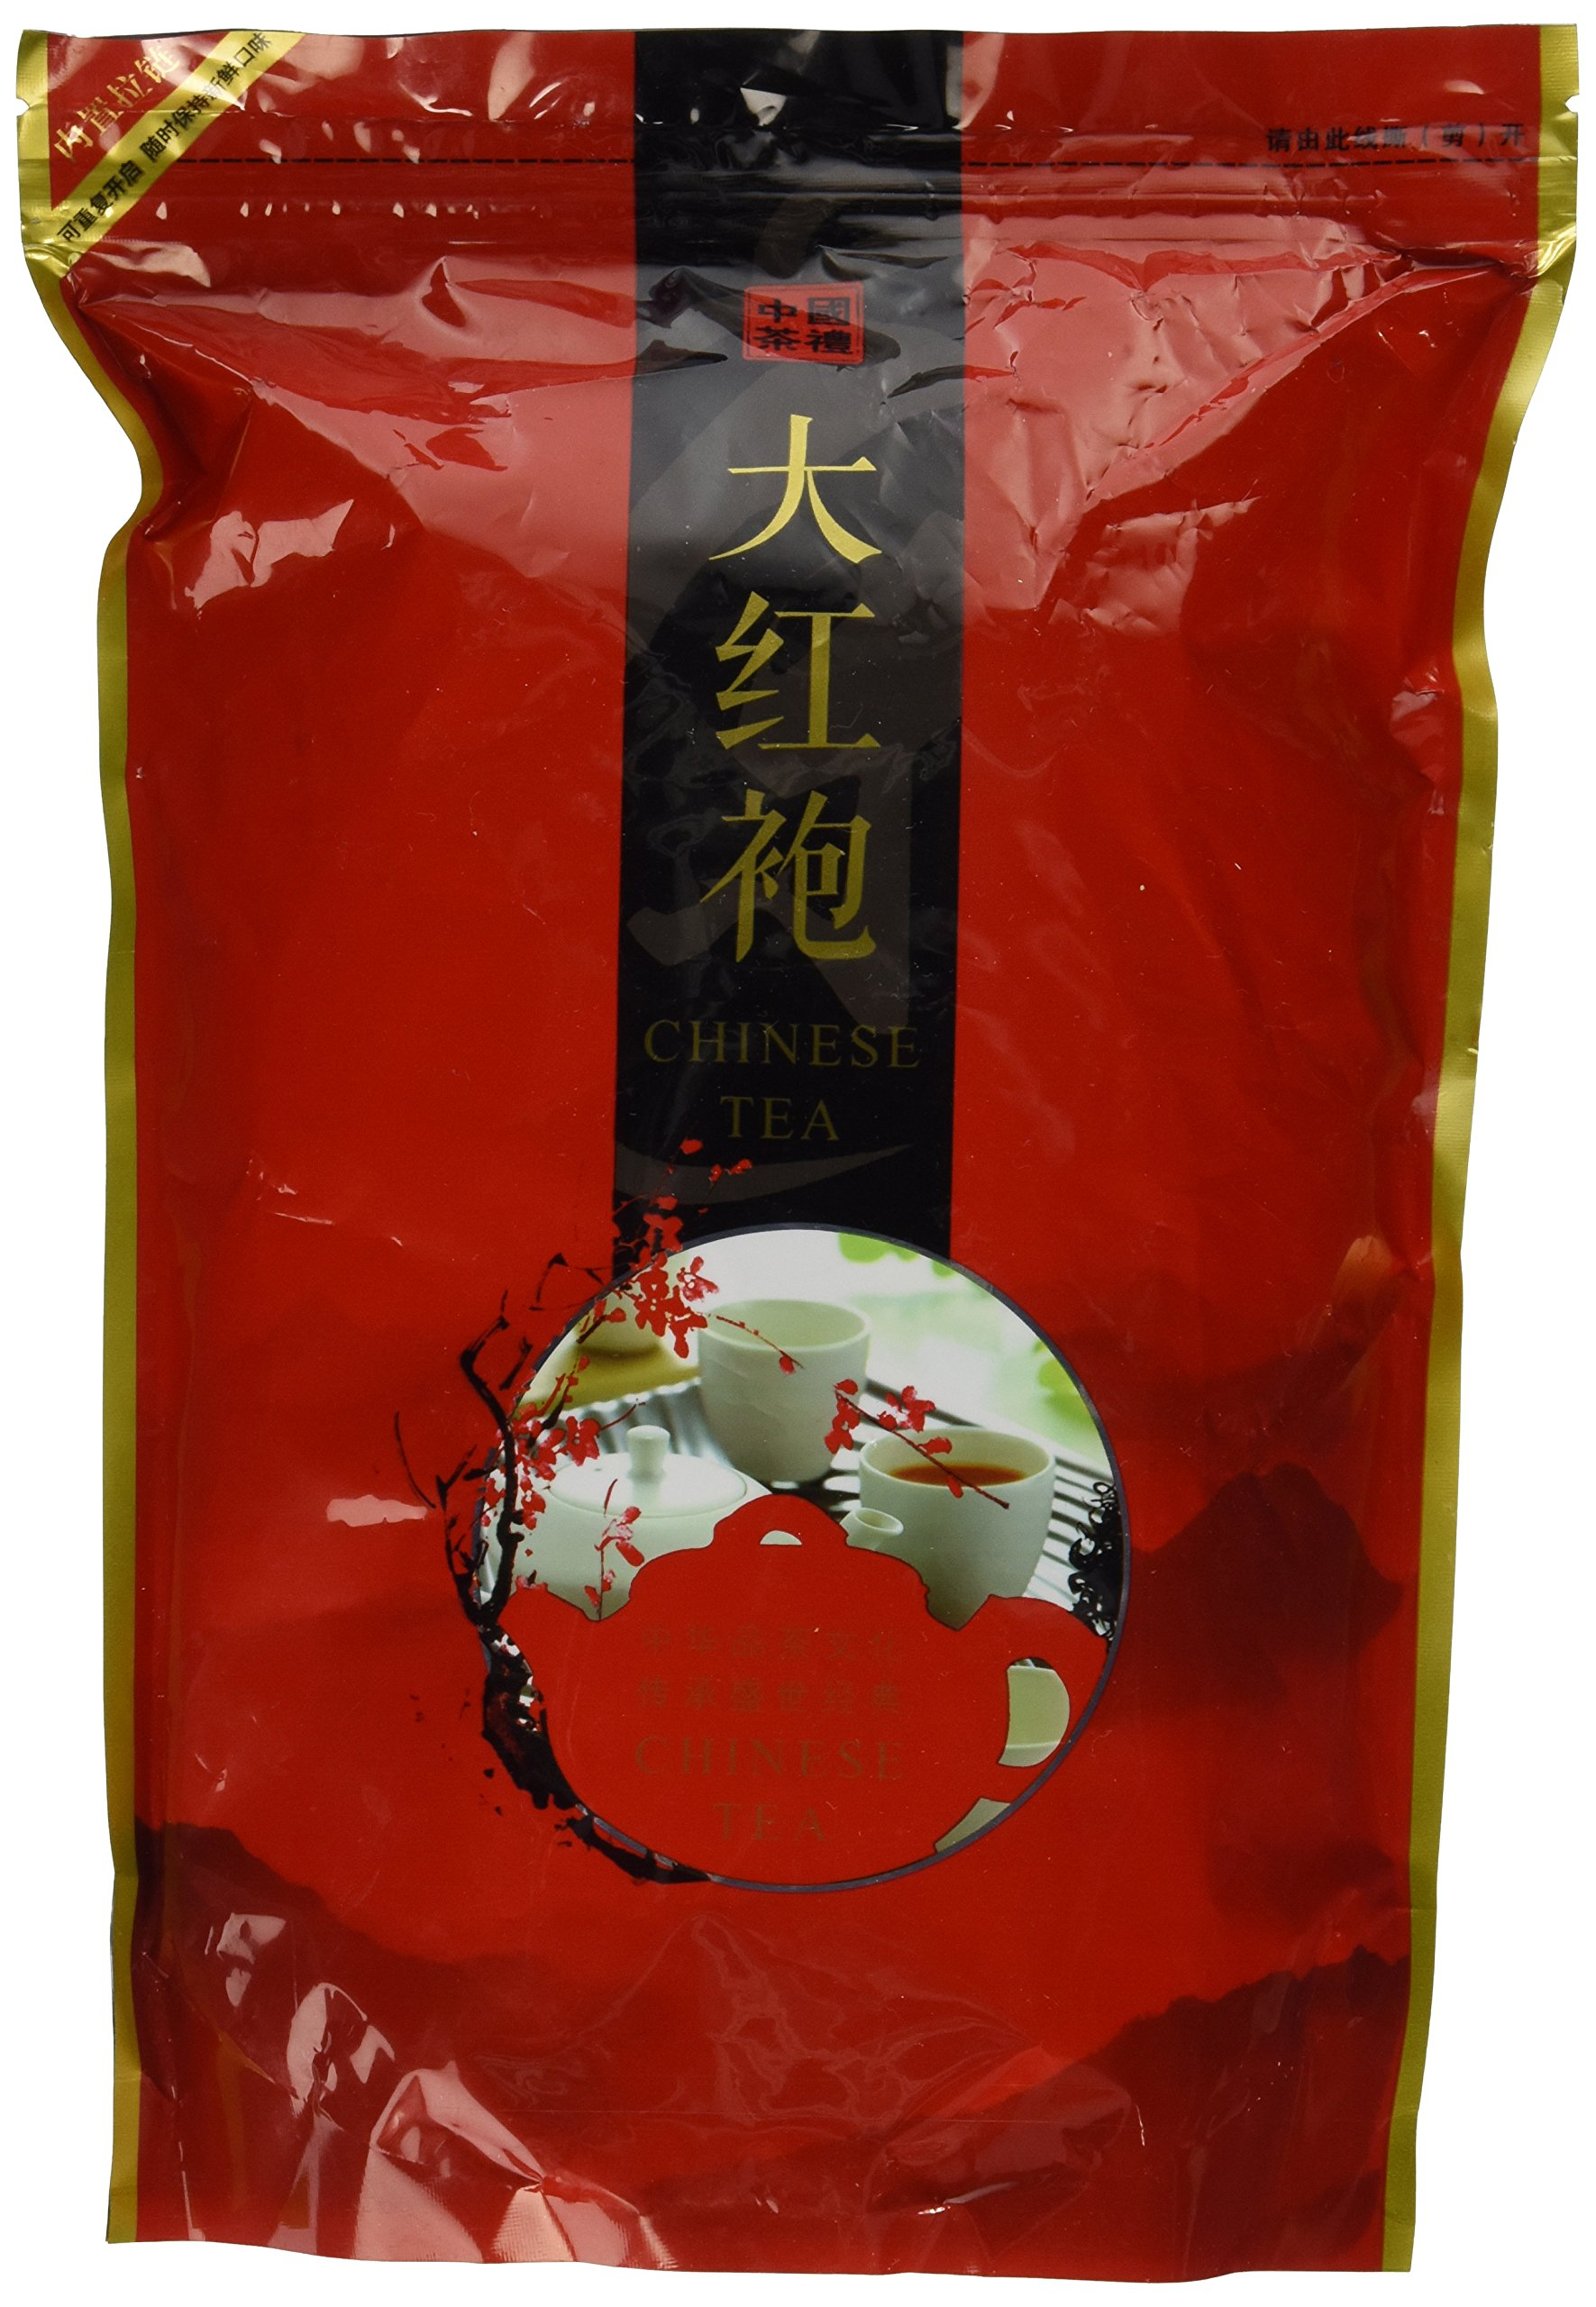 Finest 100% Organic Wu-Yi Wulong Oolong Weight Reducing Tea Loose Bulk 1 Lb. by Island Teas